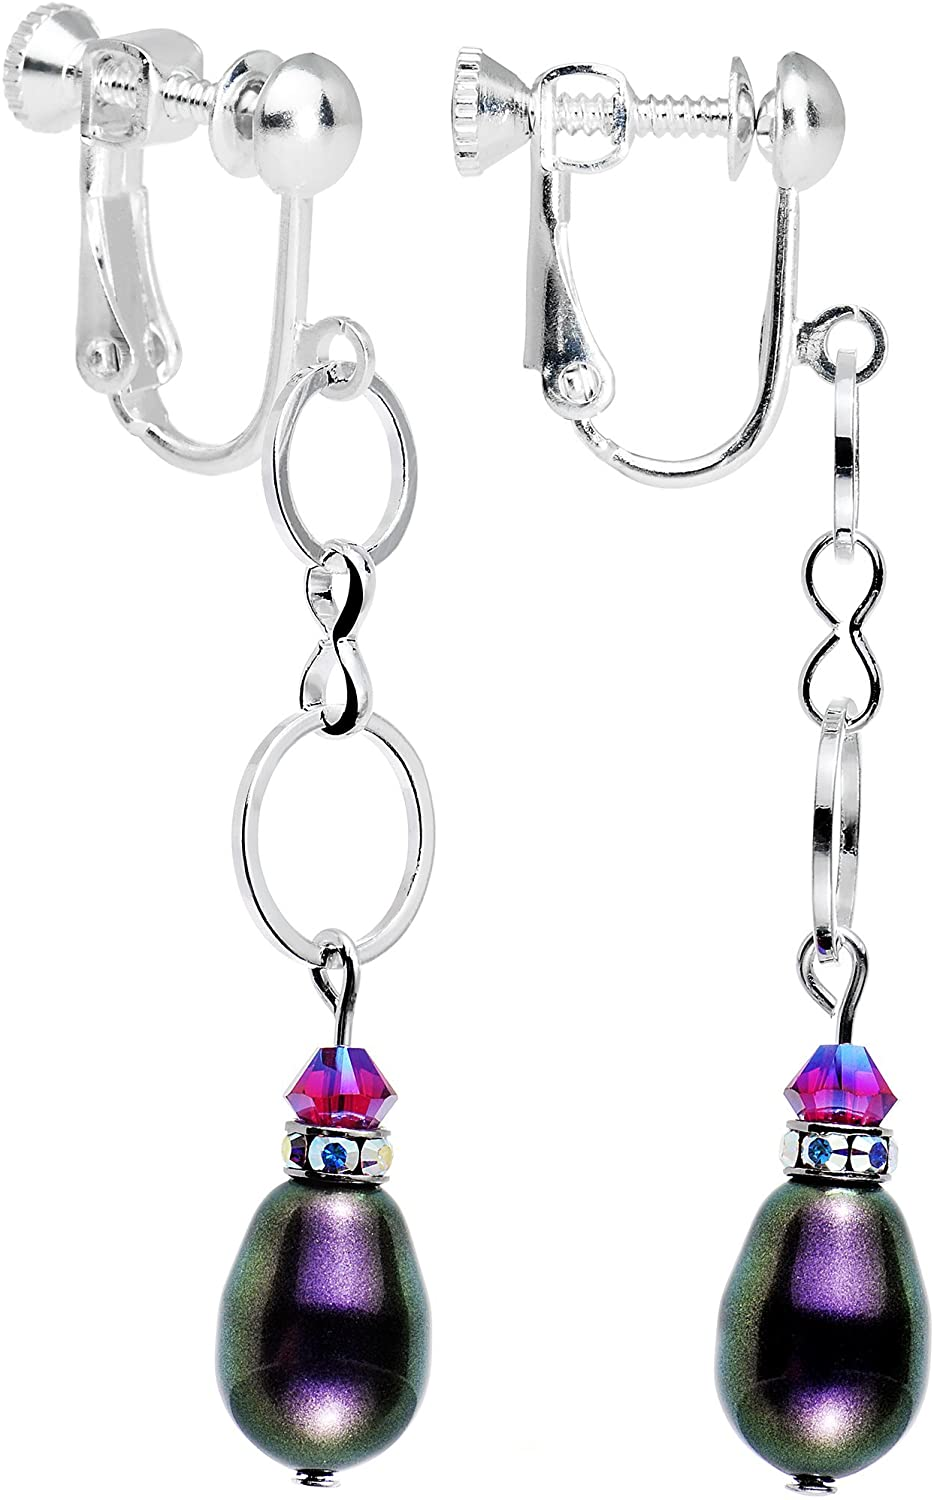 Body Candy Handcrafted Silver Plated Purple Circles Clip On Earrings Created with Swarovski Crystals